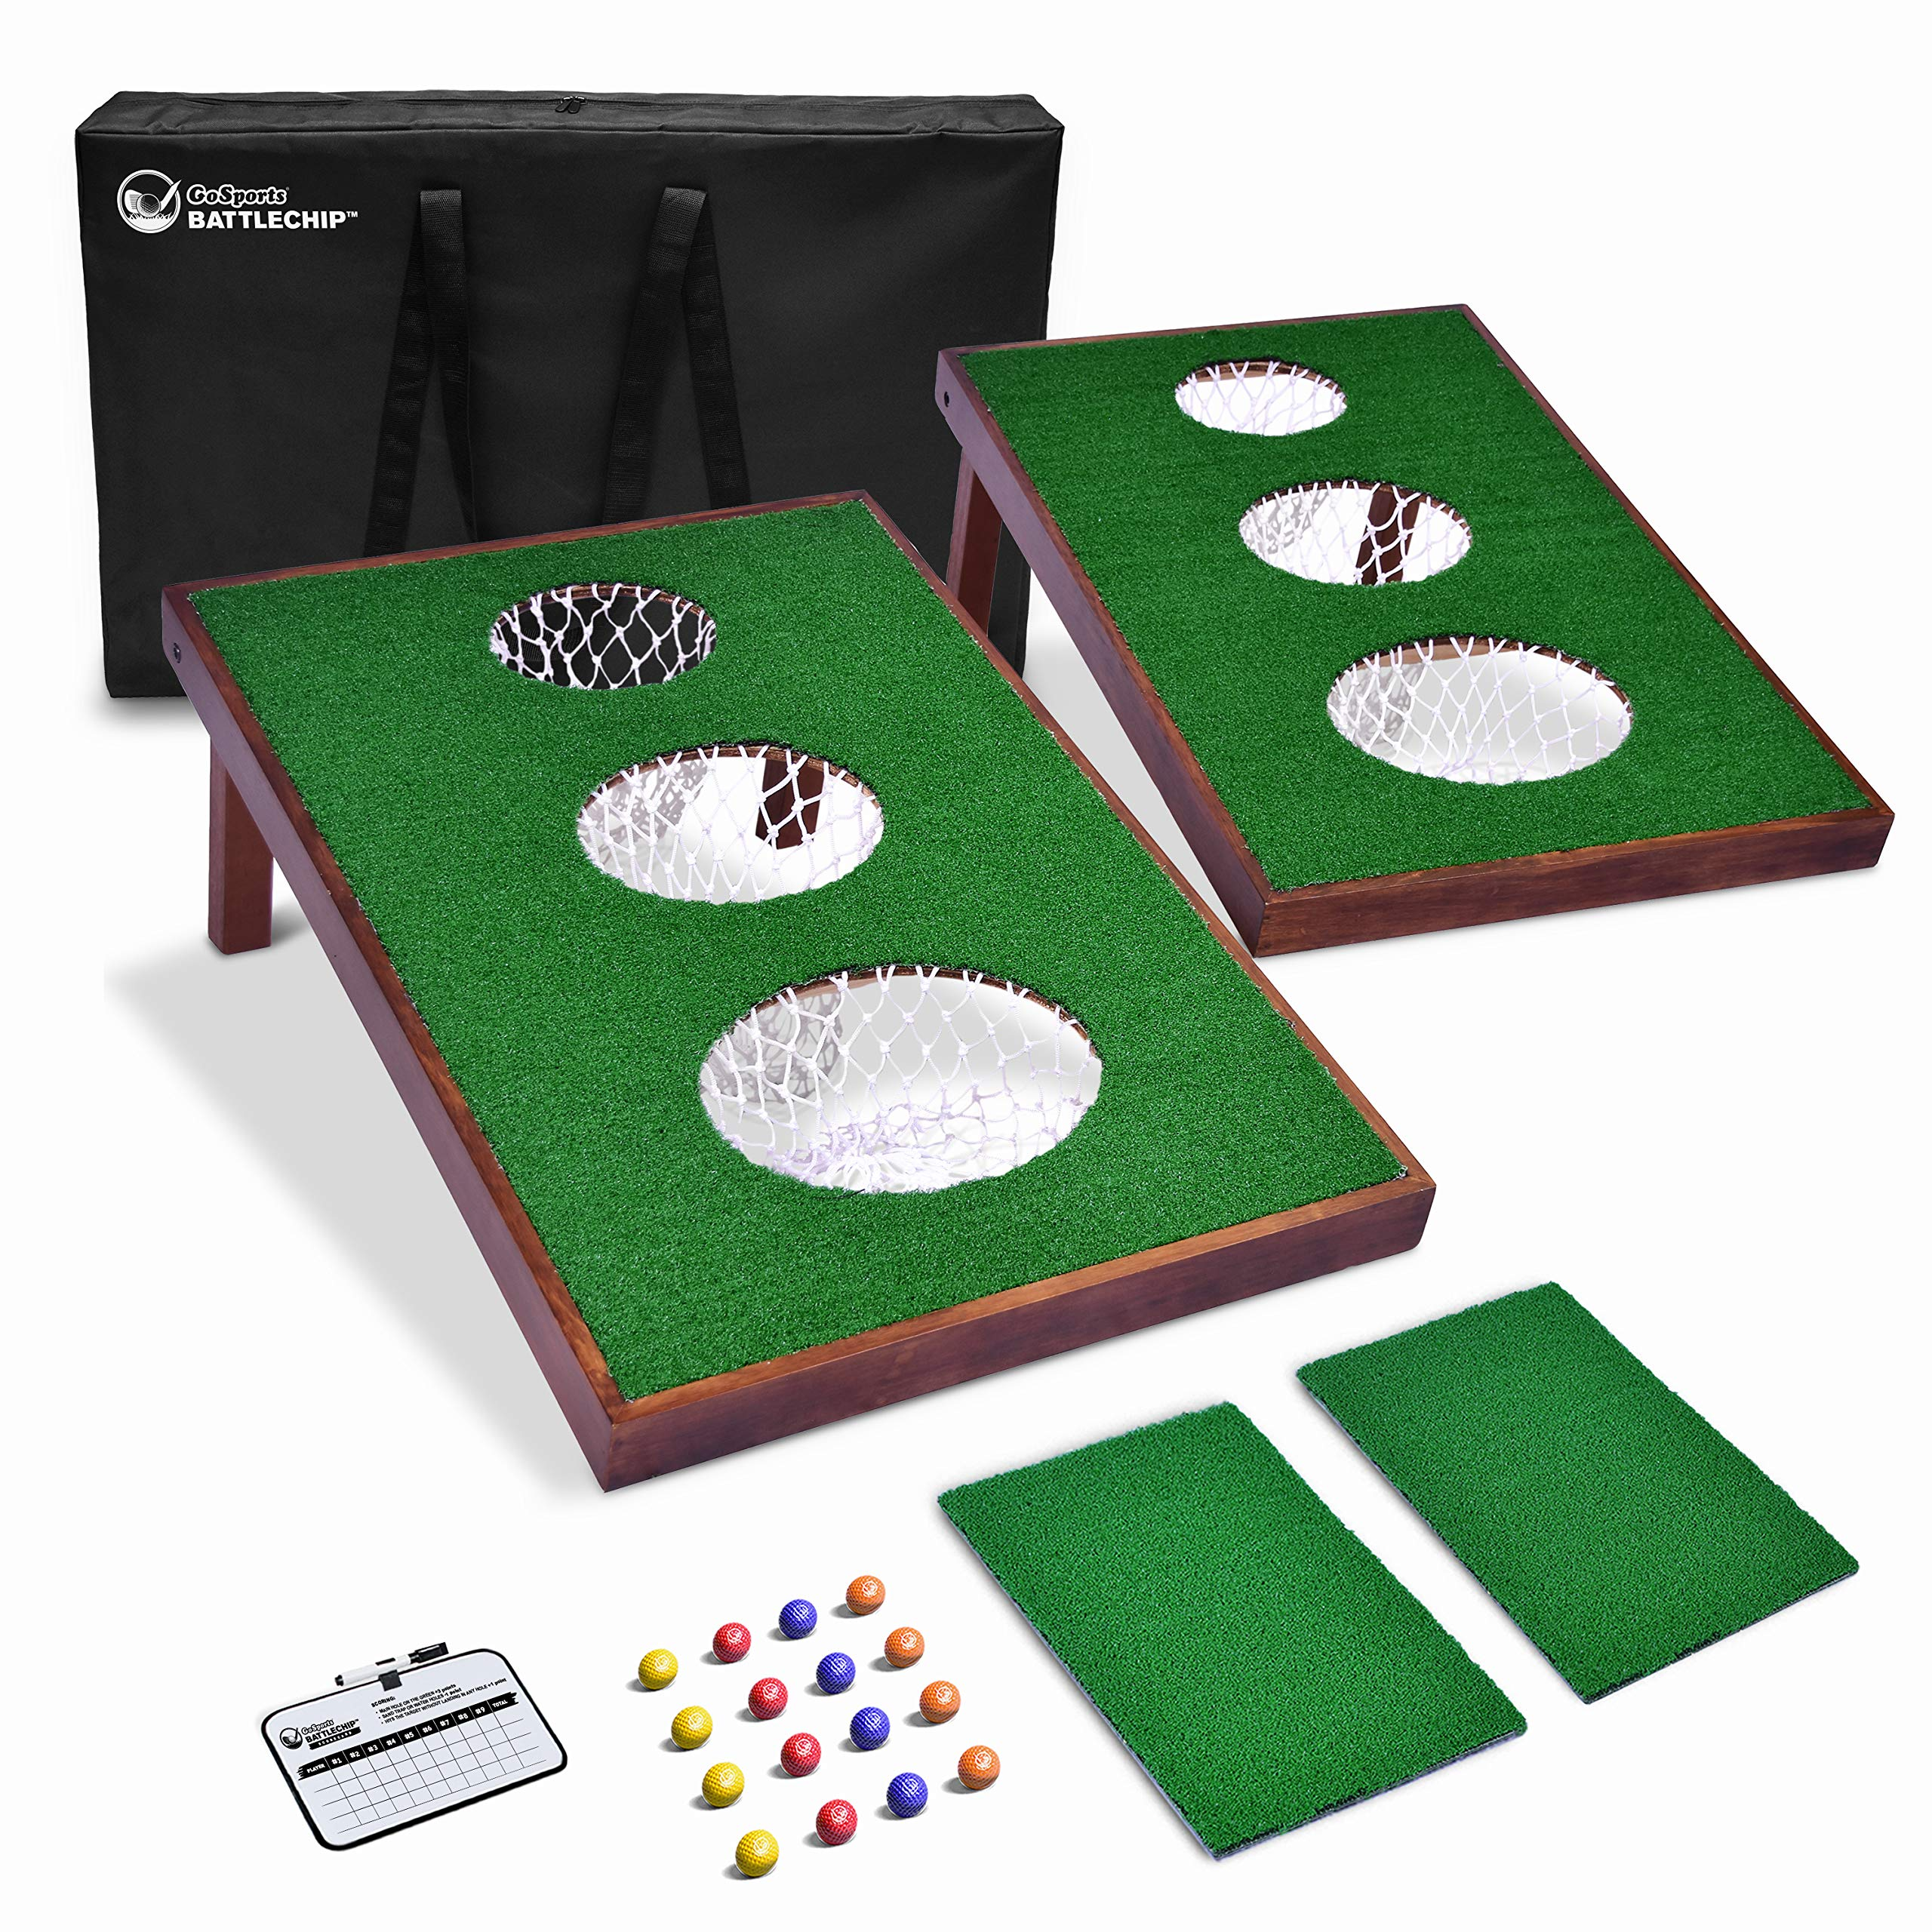 GoSports BattleChip Versus Golf Game | Includes Two 3' x 2' Targets, 16 Foam Balls, 2 Hitting Mats, Scorecard and Carrying Case